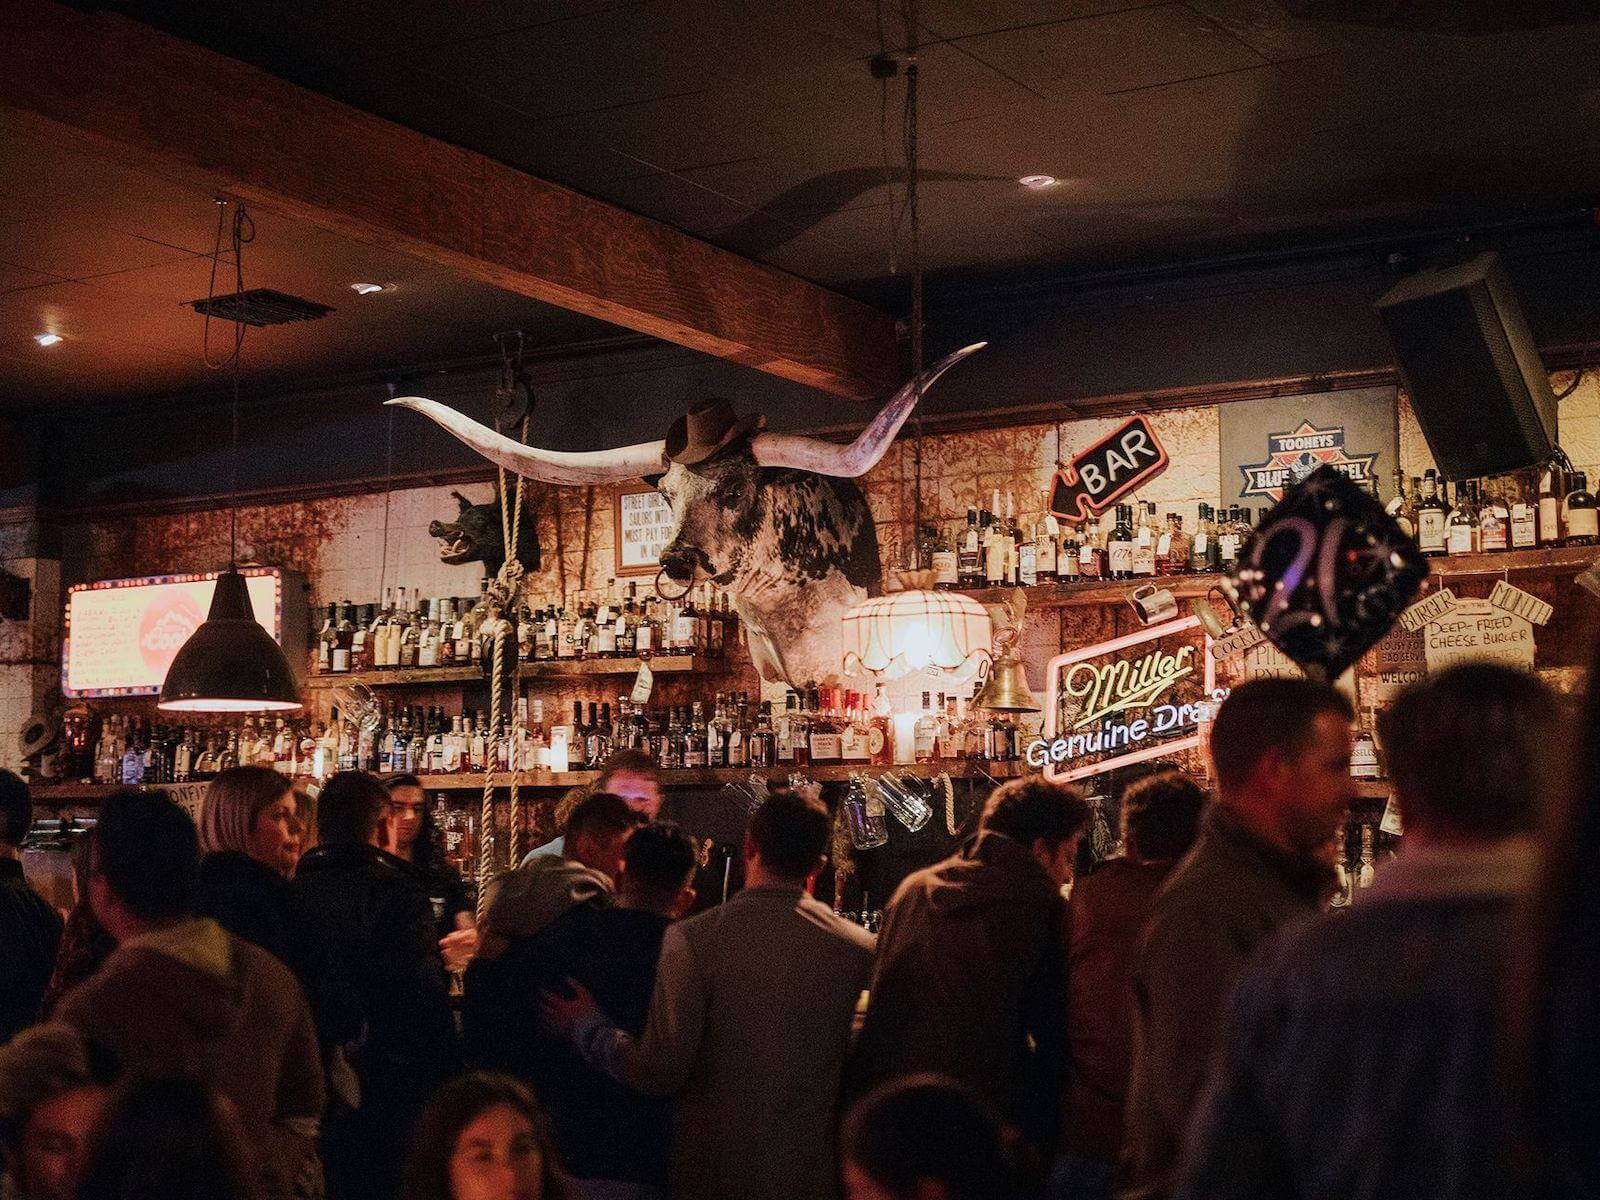 the bar at Alabama song packed out, showing the bull head and other American-style decor